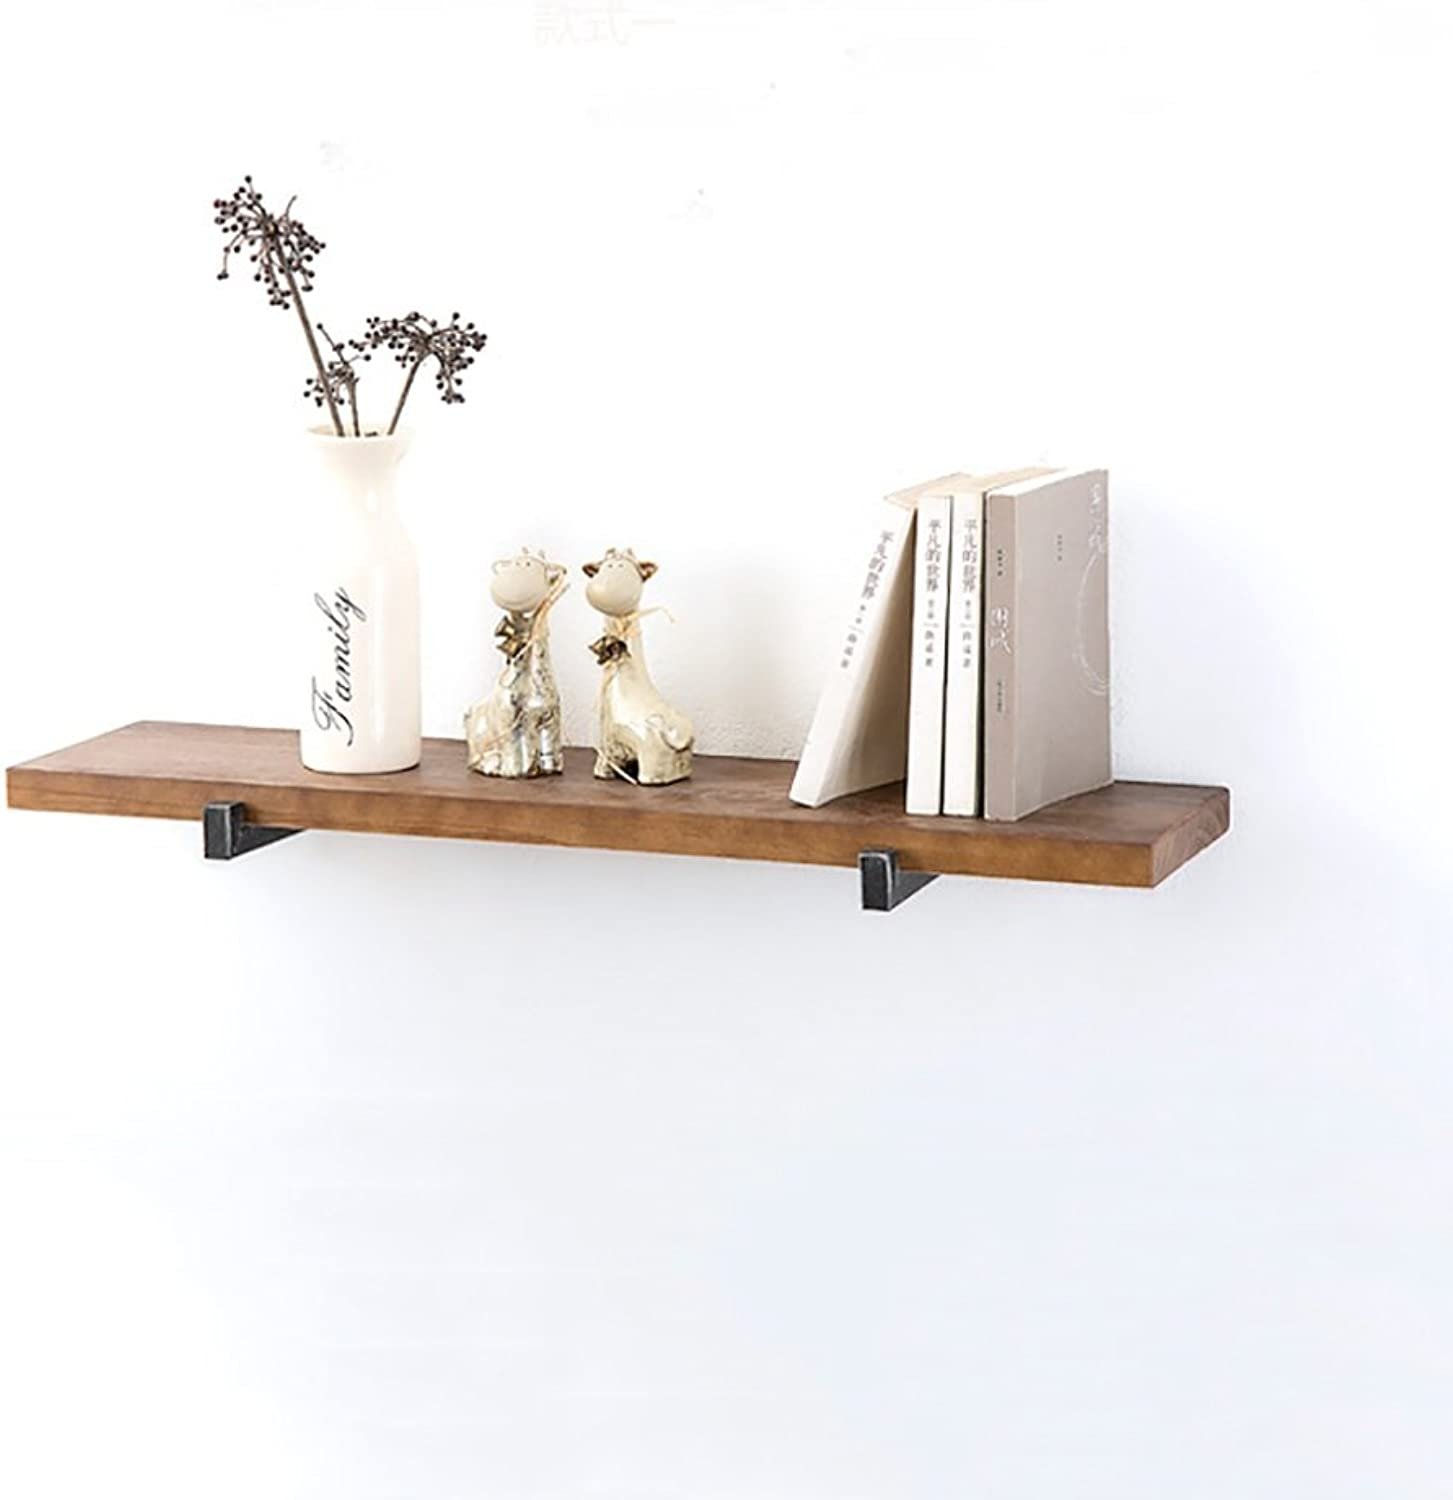 Decorative Accessories Floating Shelves Decorative Wall Shelf Single Layer Retro Style with Iron and Wood Storage Display Book Shelf Floating Shelves (Size   6020CM)